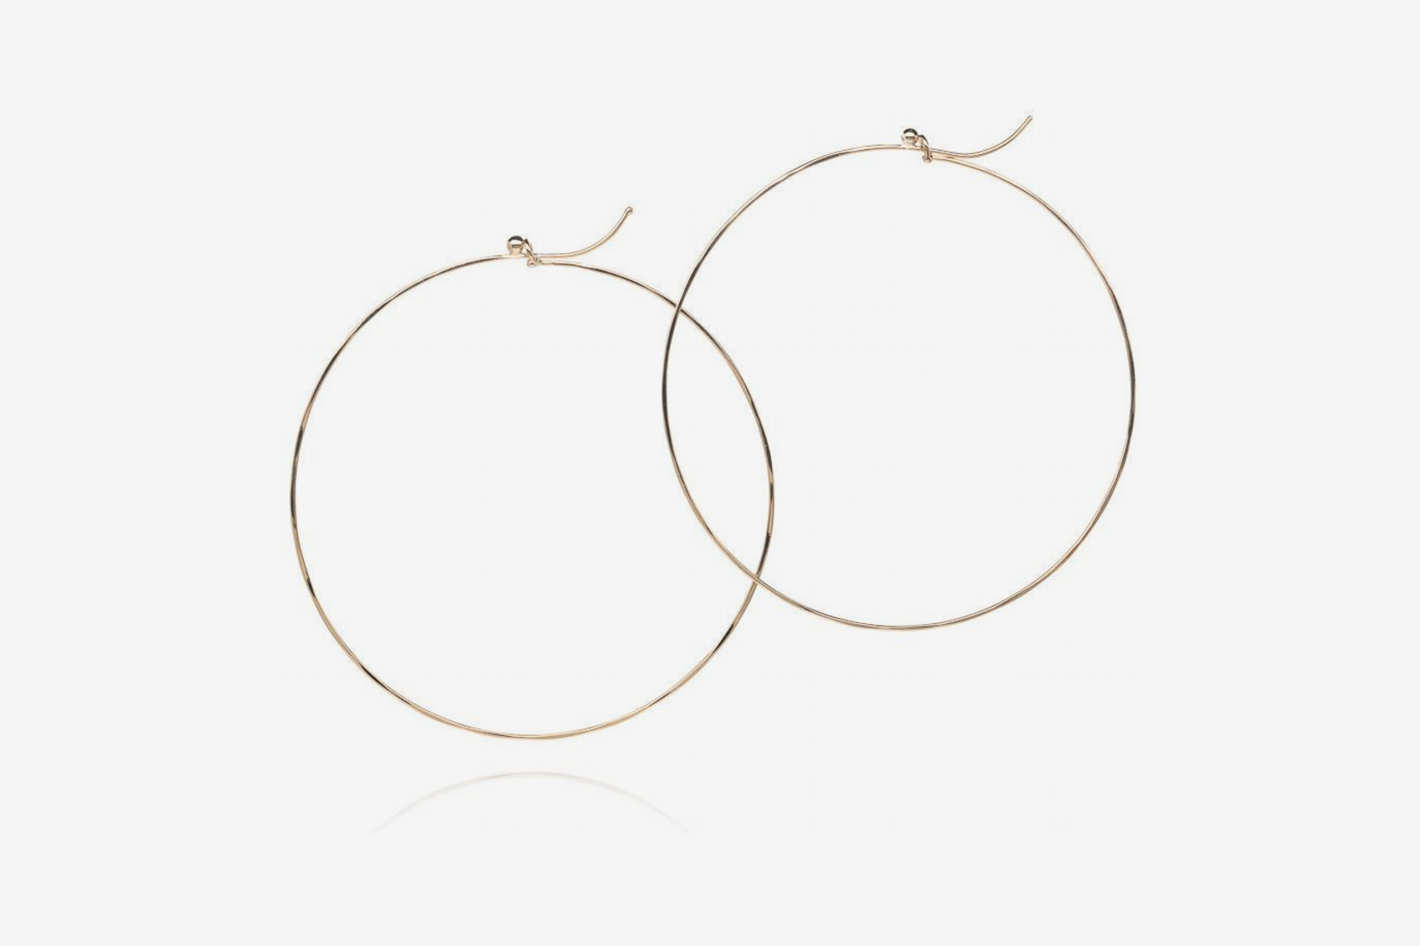 Dean Harris 18k Yellow Gold Flattened Hoop Earrings